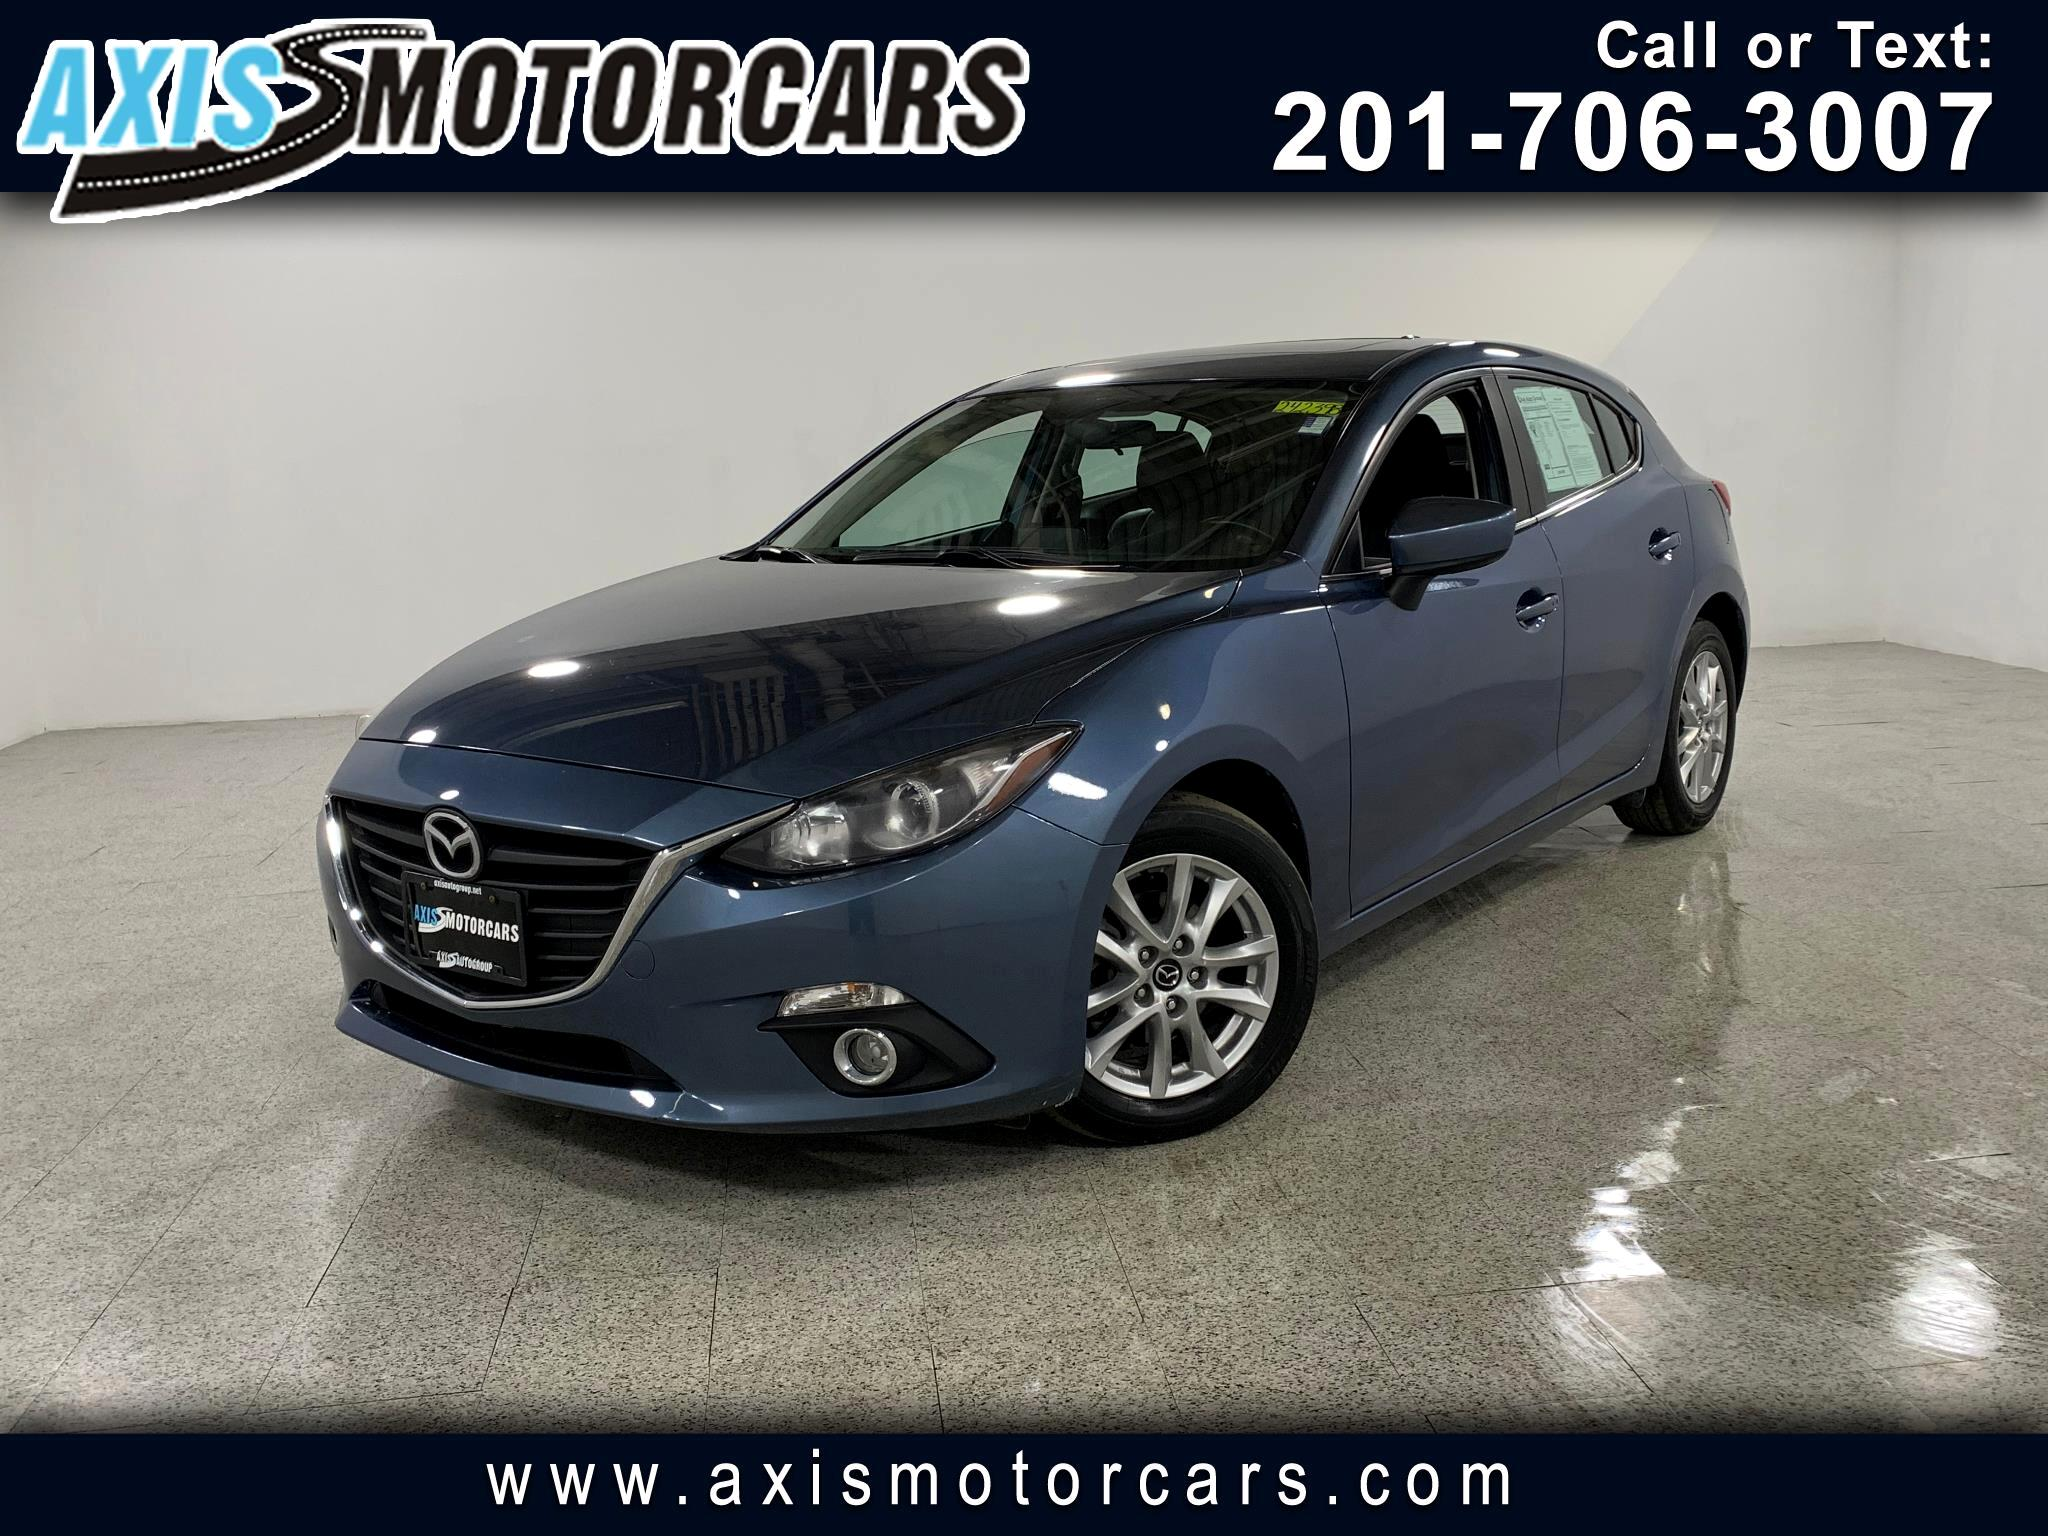 2015 Mazda MAZDA3 Grand Touring w/Bose Sound System Navigation